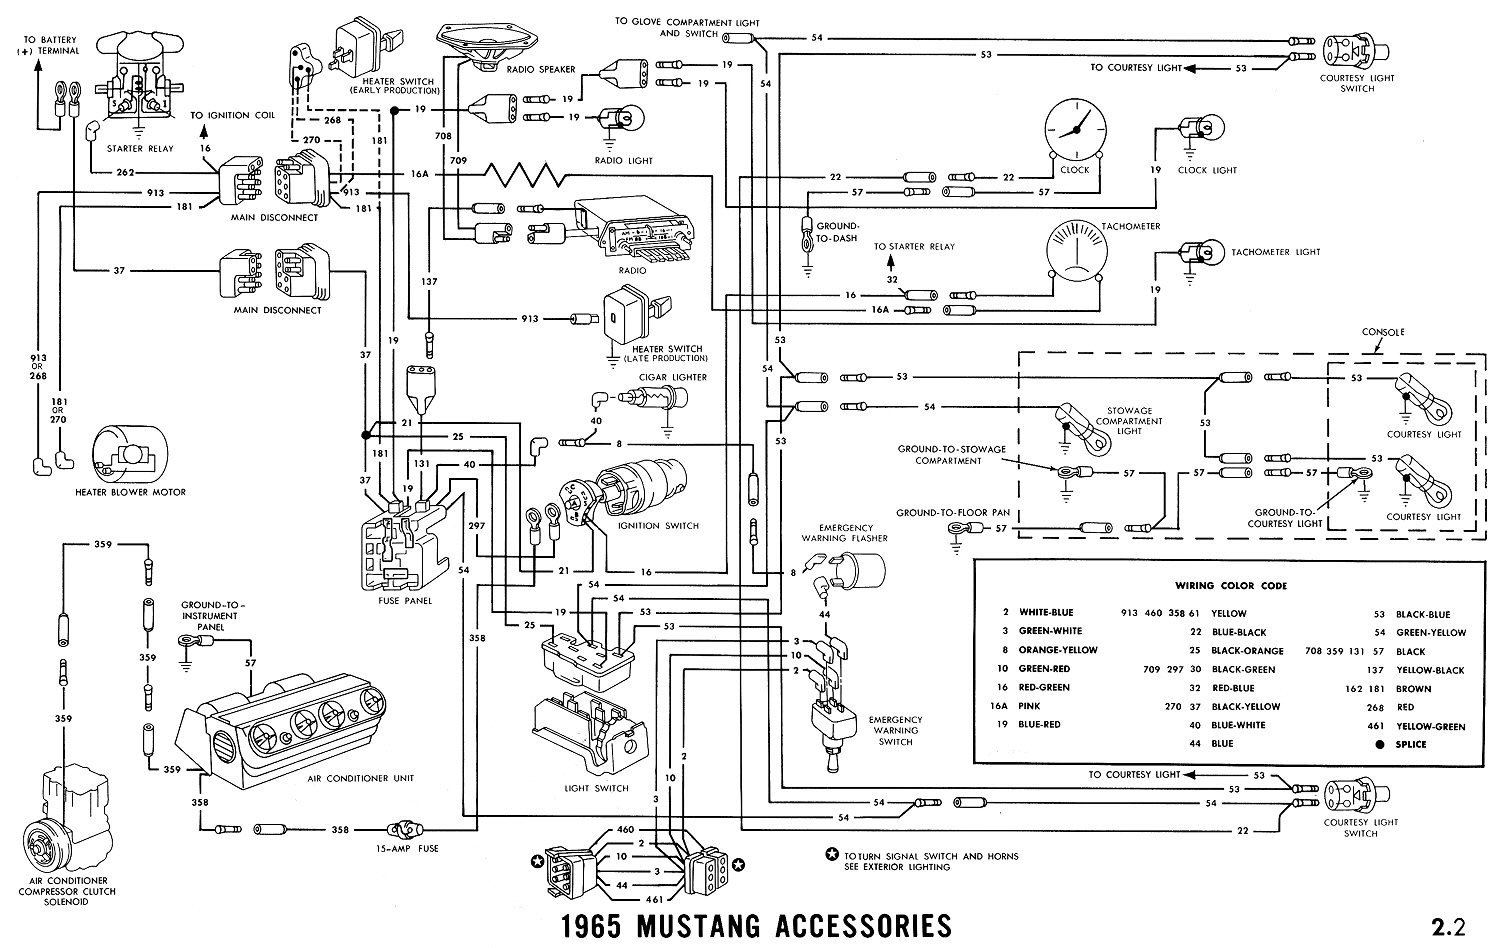 1971 Mustang Convertible Wiring Diagram Guide And Troubleshooting 71 Color Diagrams Scematic Rh 43 Jessicadonath De Ford 1966 289 Engine